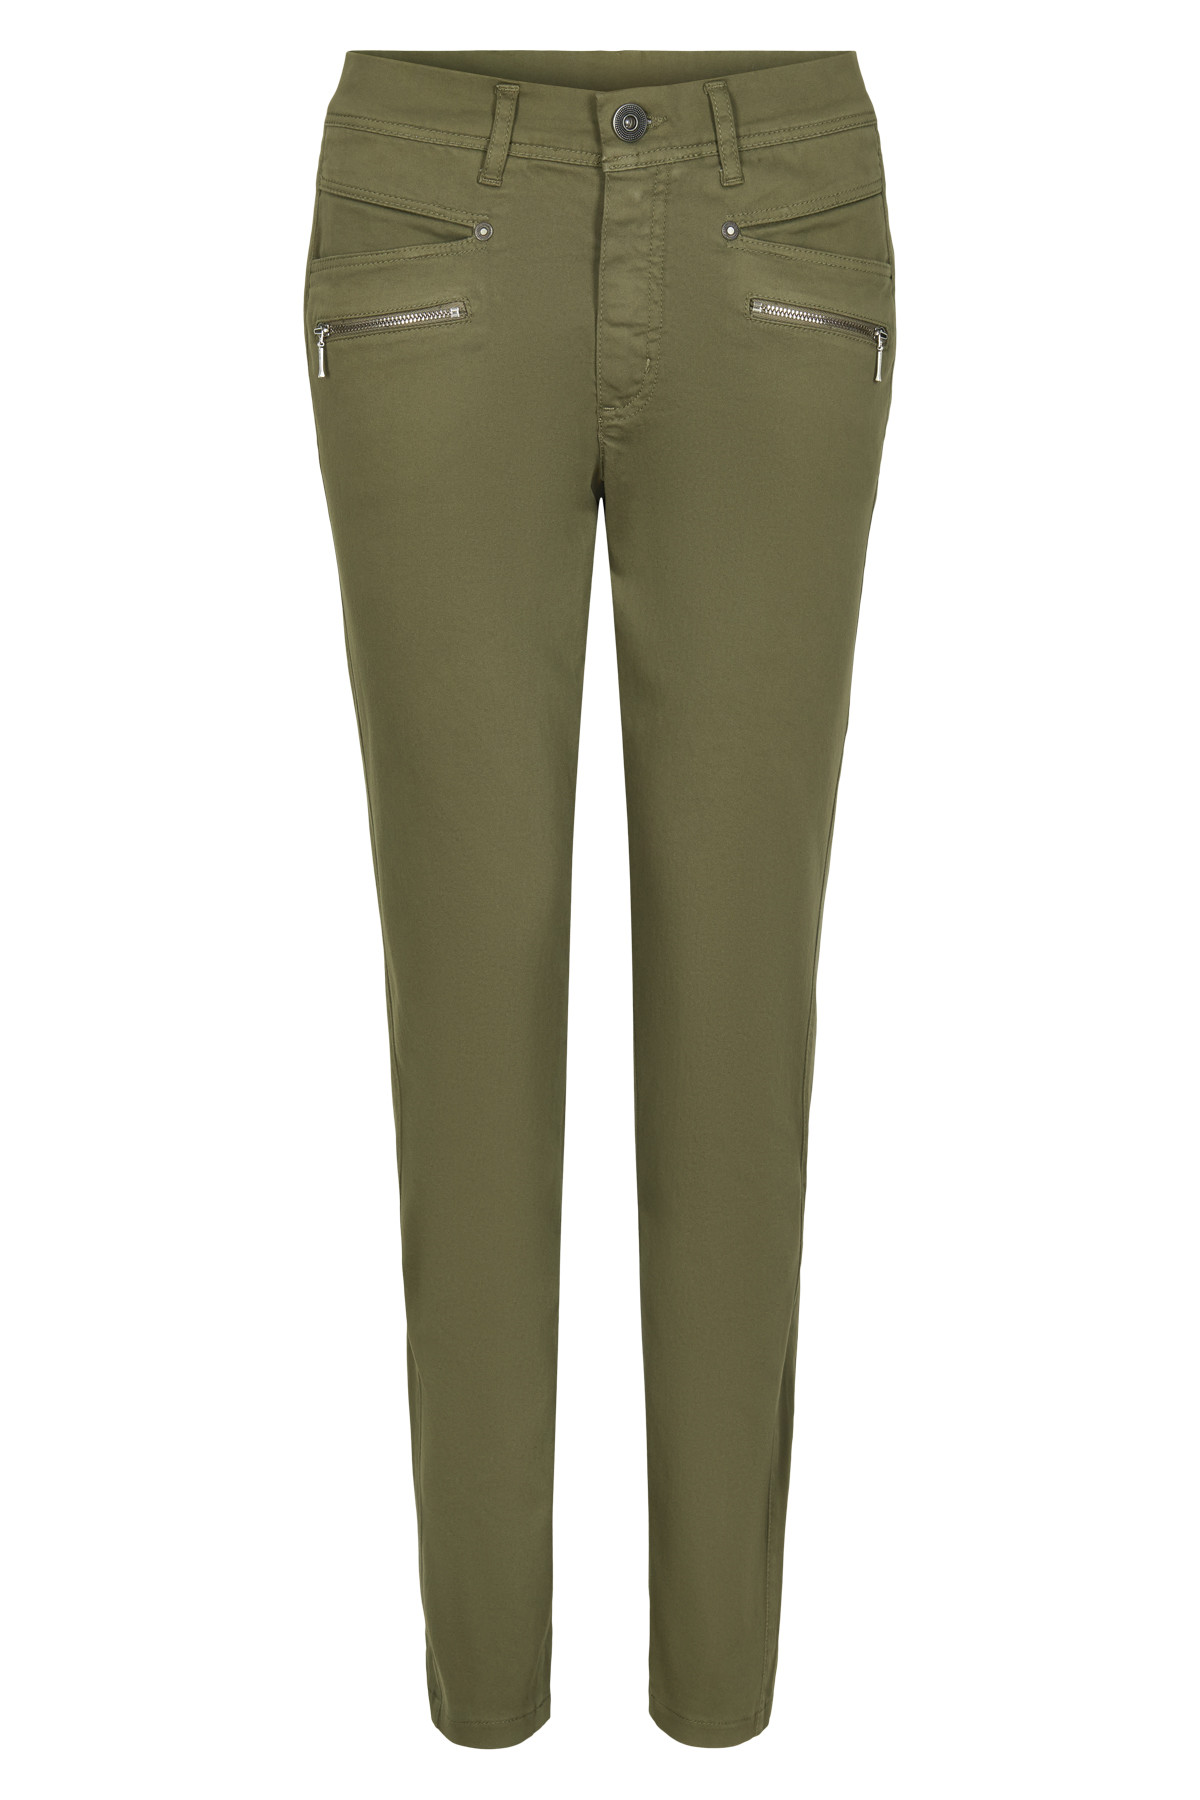 Image of 2BIZ RANY PANTS 43654 (Khaki, 36)